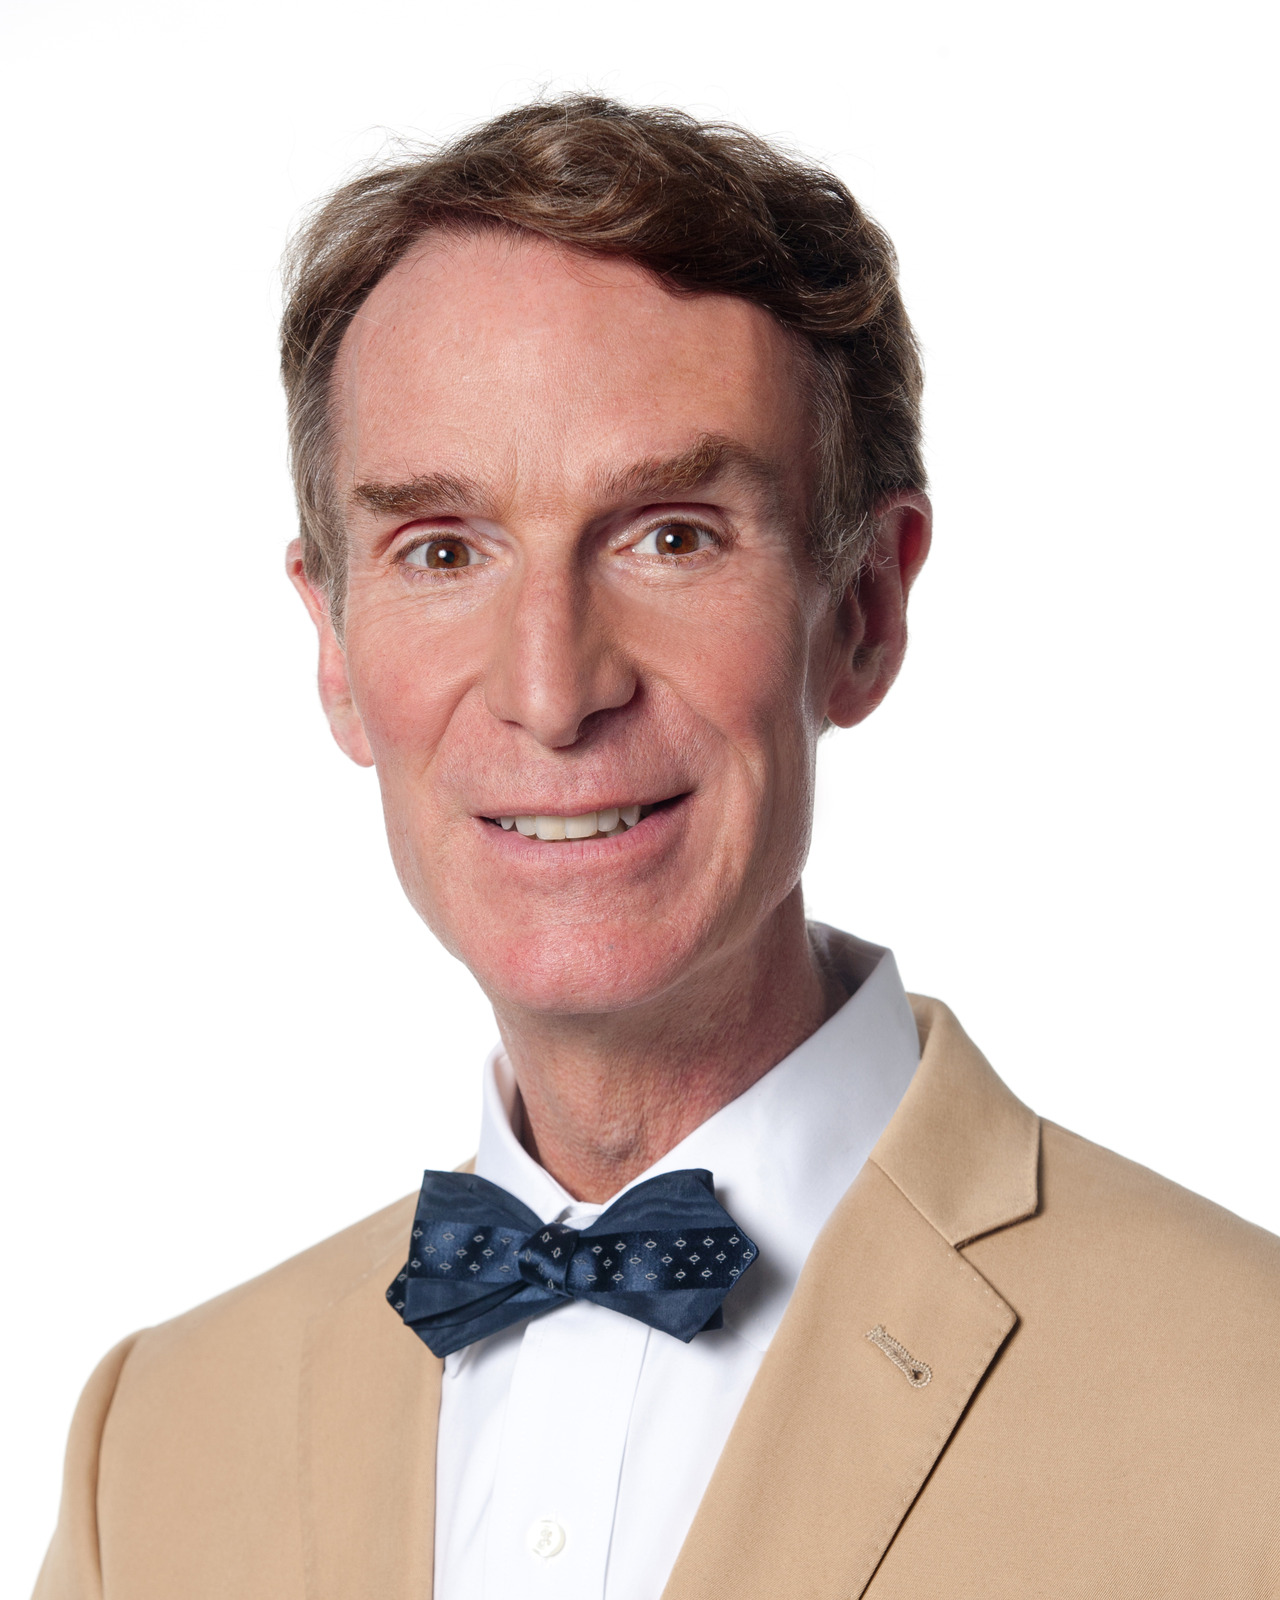 Hey Bill Nye, 'Does Homosexuality Make Evolutionary Sense?' #tuesdayswithbill